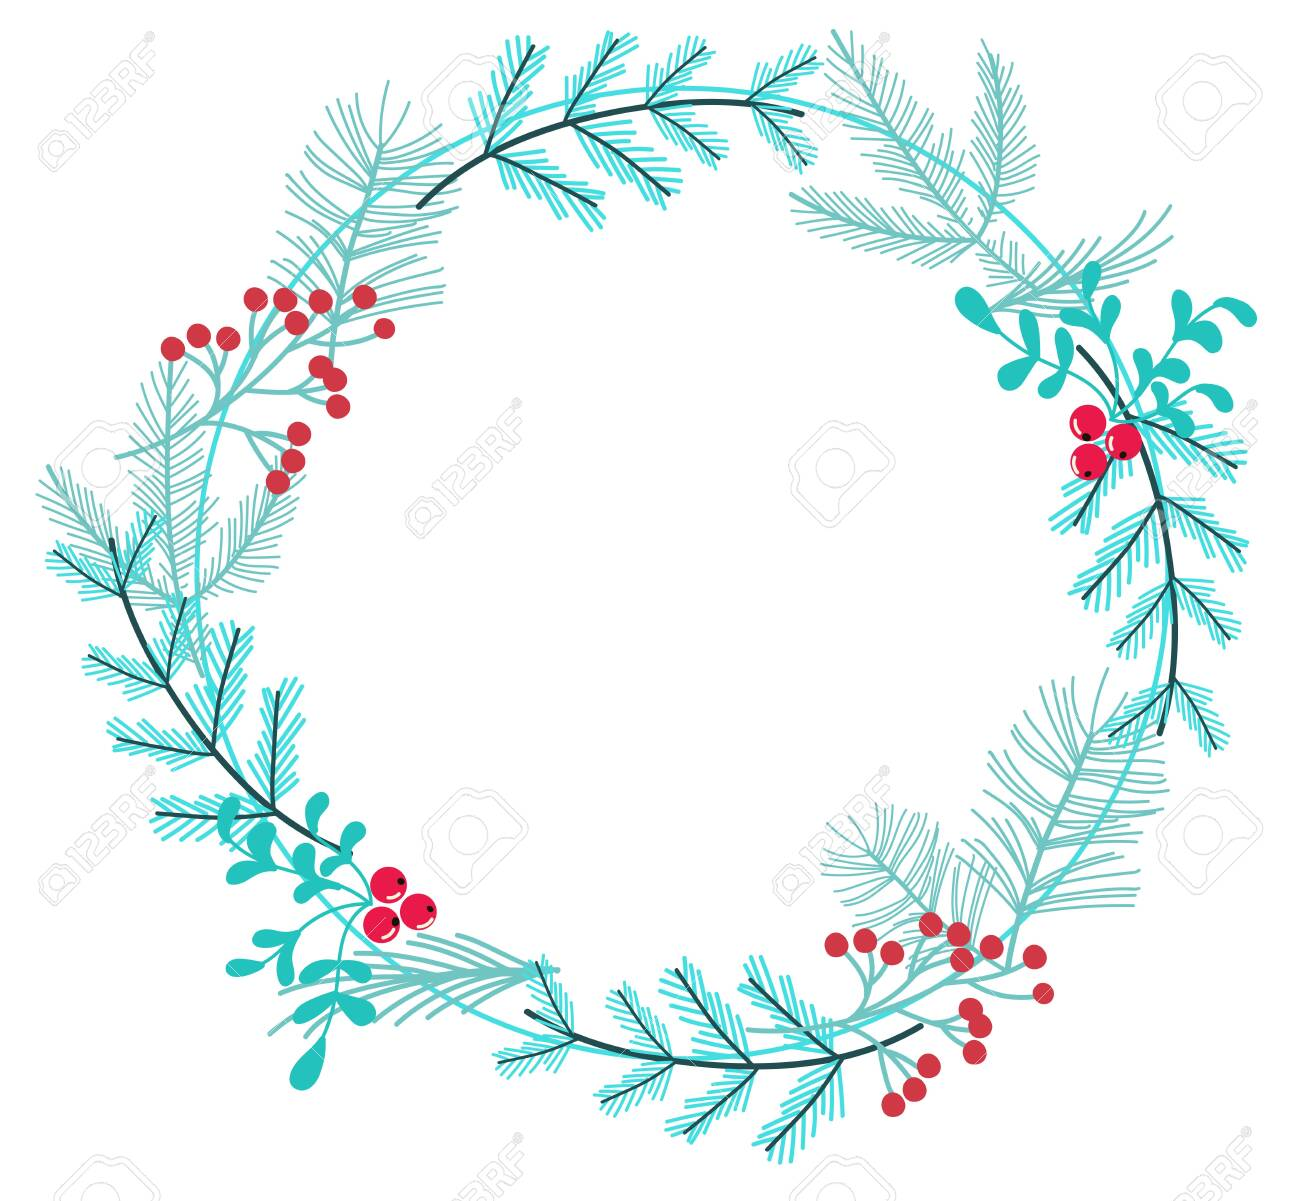 simple winter wreath made of branches and berries - 127956743